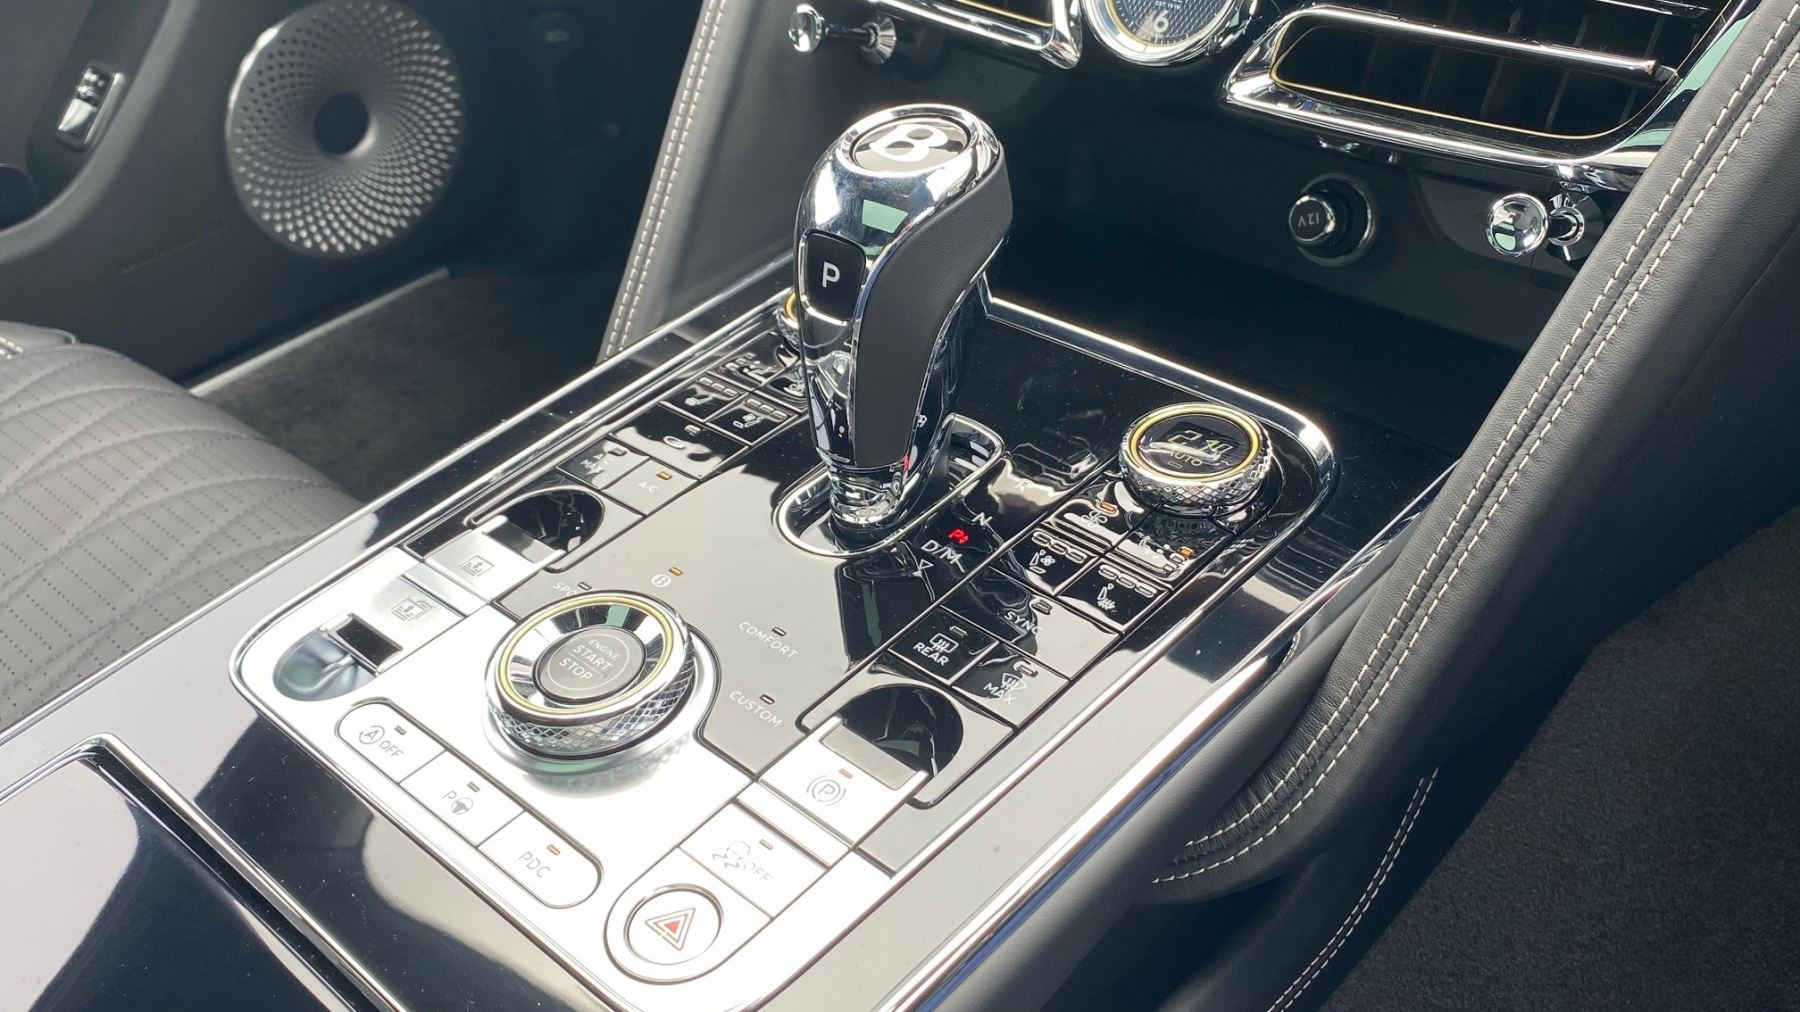 Bentley Flying Spur 4.0 V8 Mulliner Driving Spec 4dr Auto - Touring and City Specification image 21